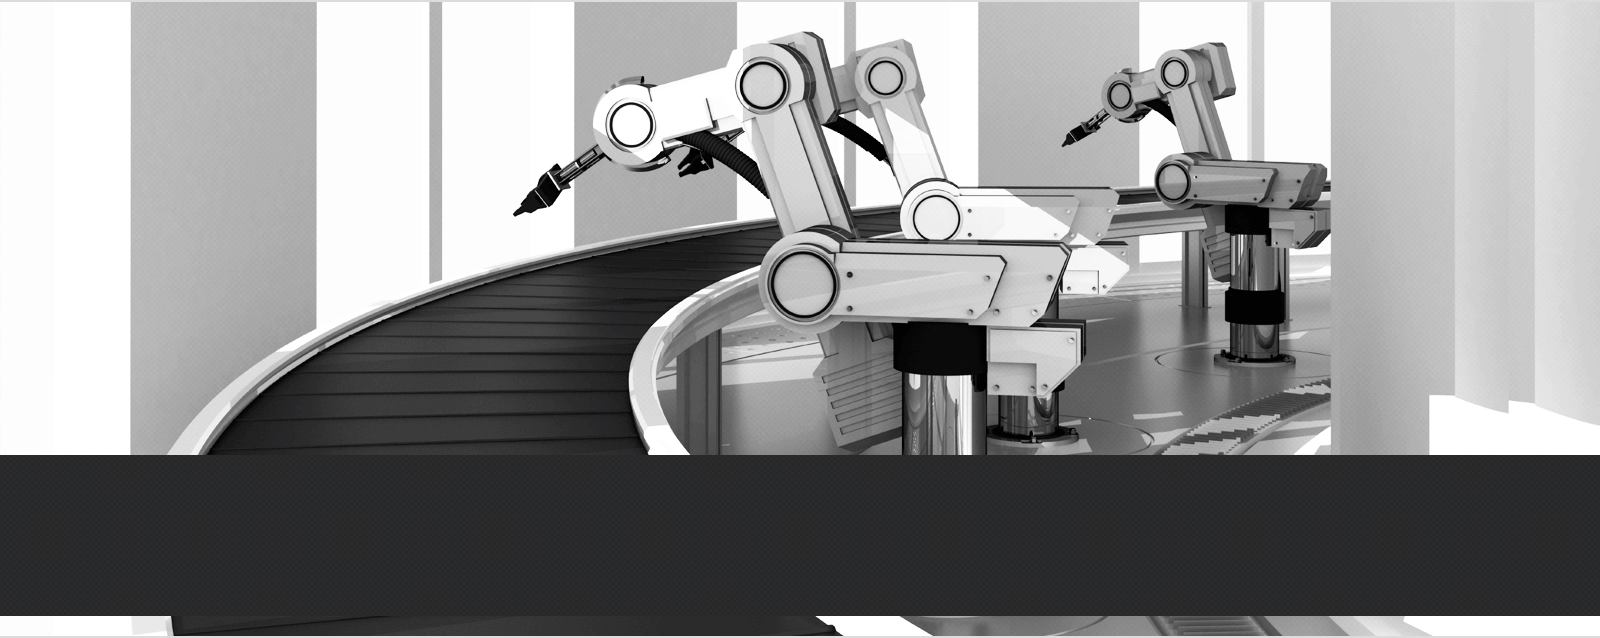 The robotic revolution at your disposal